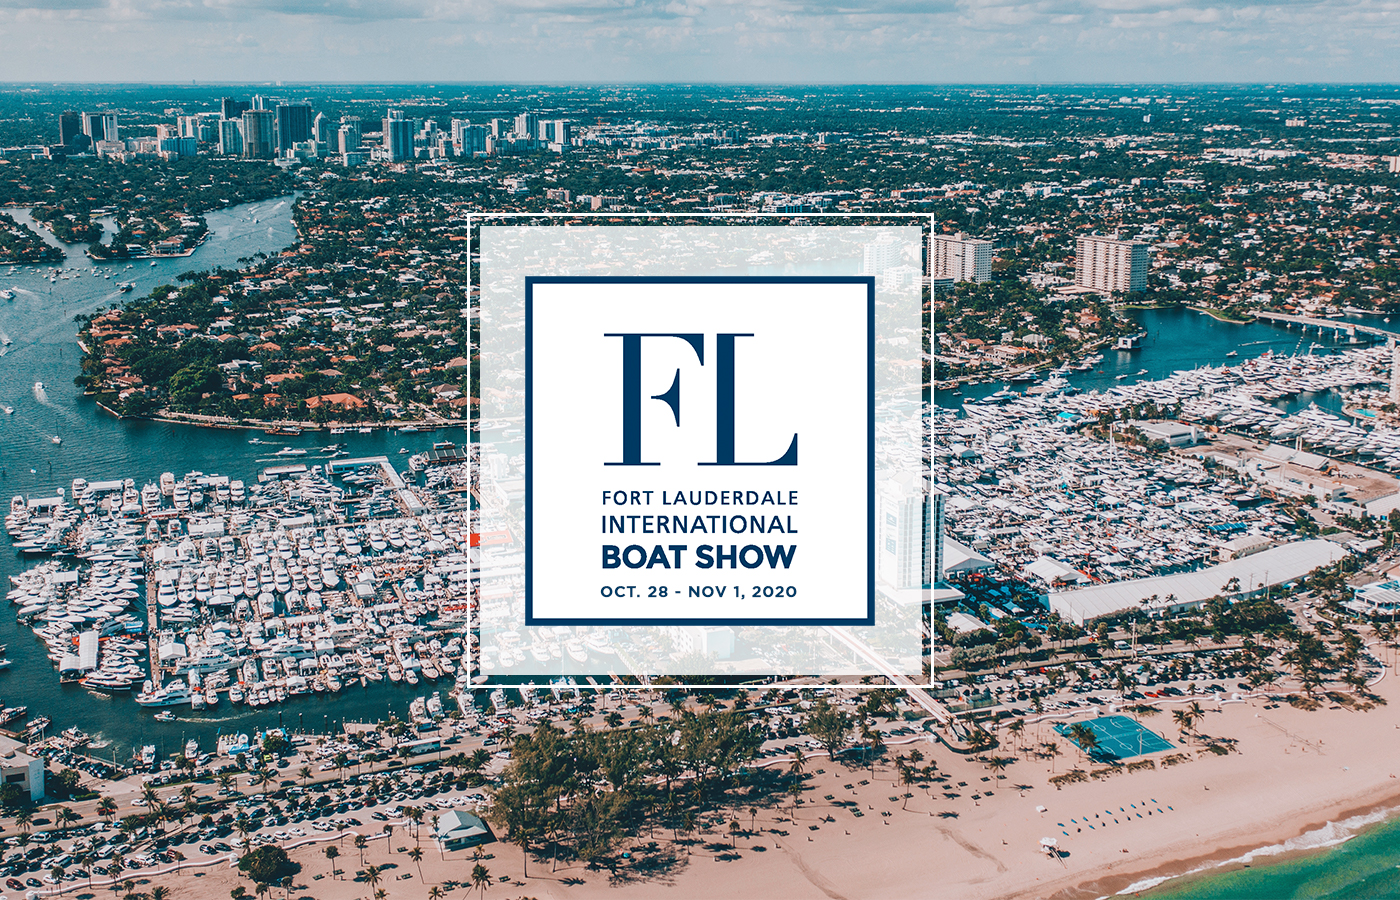 FORT LAUDERDALE BOAT SHOW ~ From The Docks Or On Your Couch